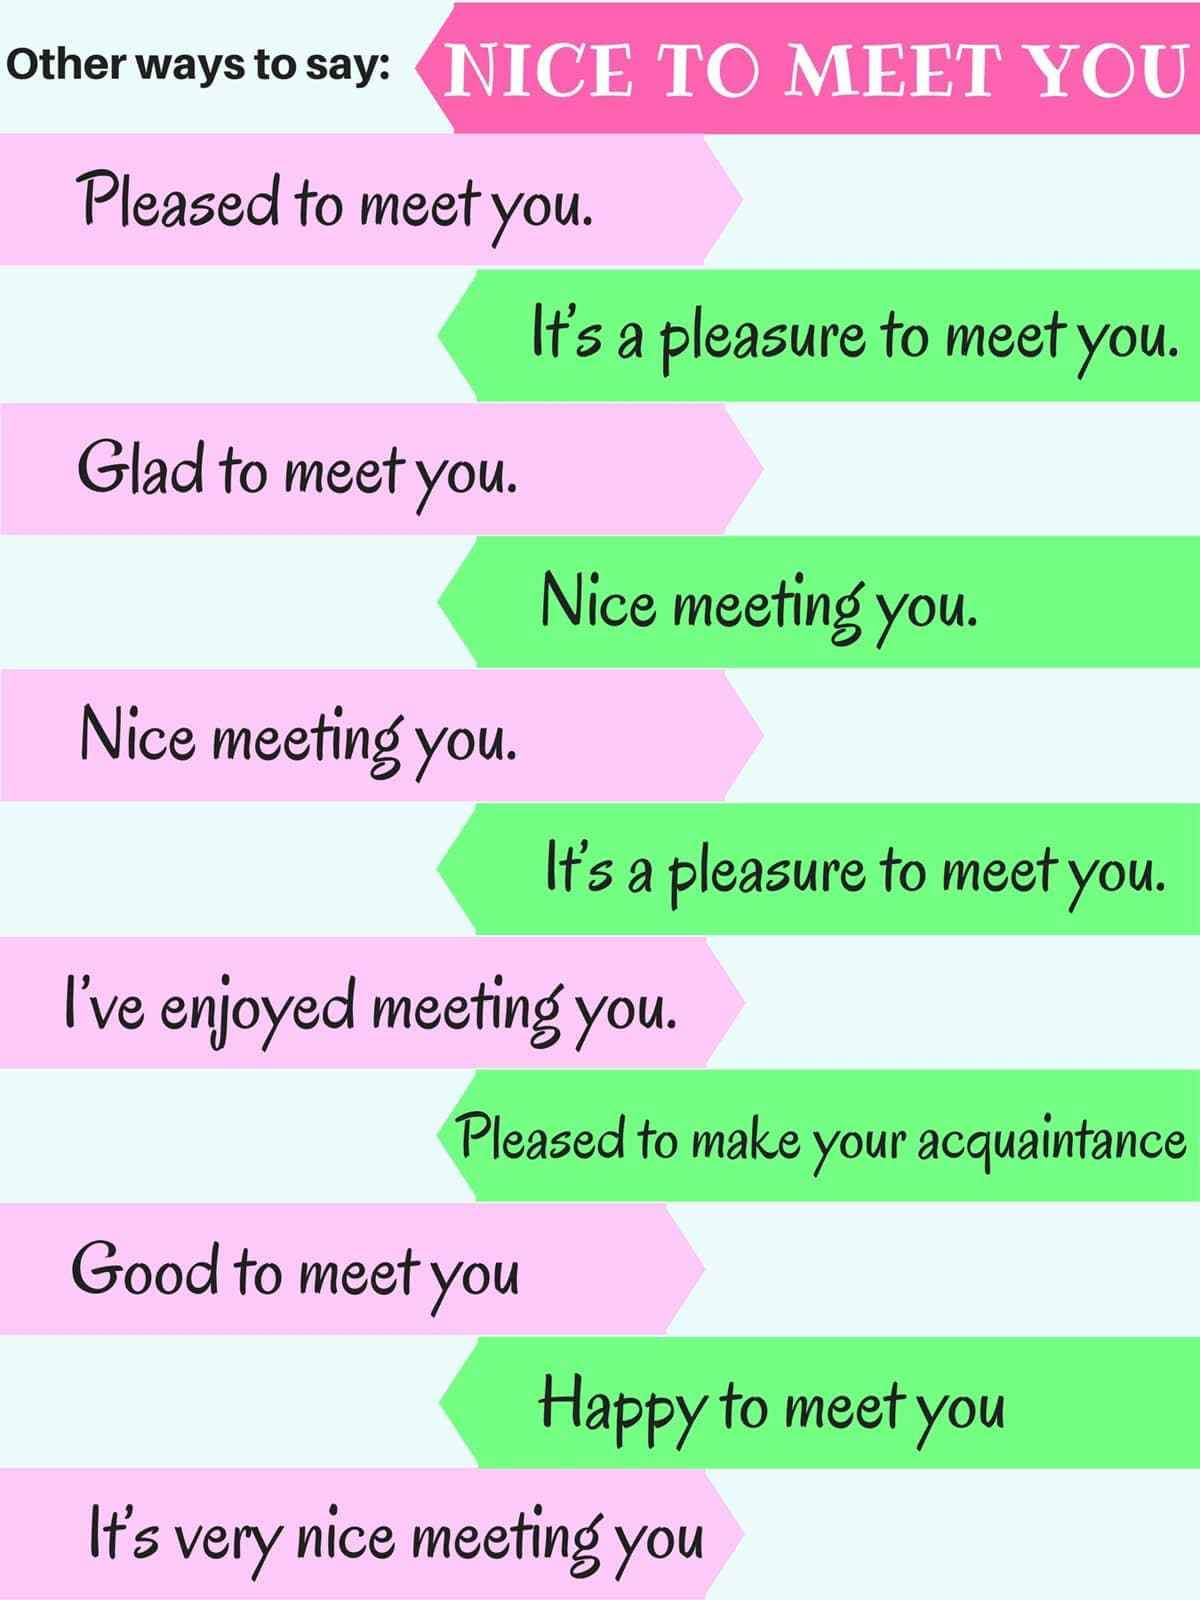 English Idioms On Twitter Other Ways To Say Nice To Meet You 1 Pleased To Meet You 2 It S A Pleasure To Meet You 3 Glad To Meet You 4 Nice Meeting